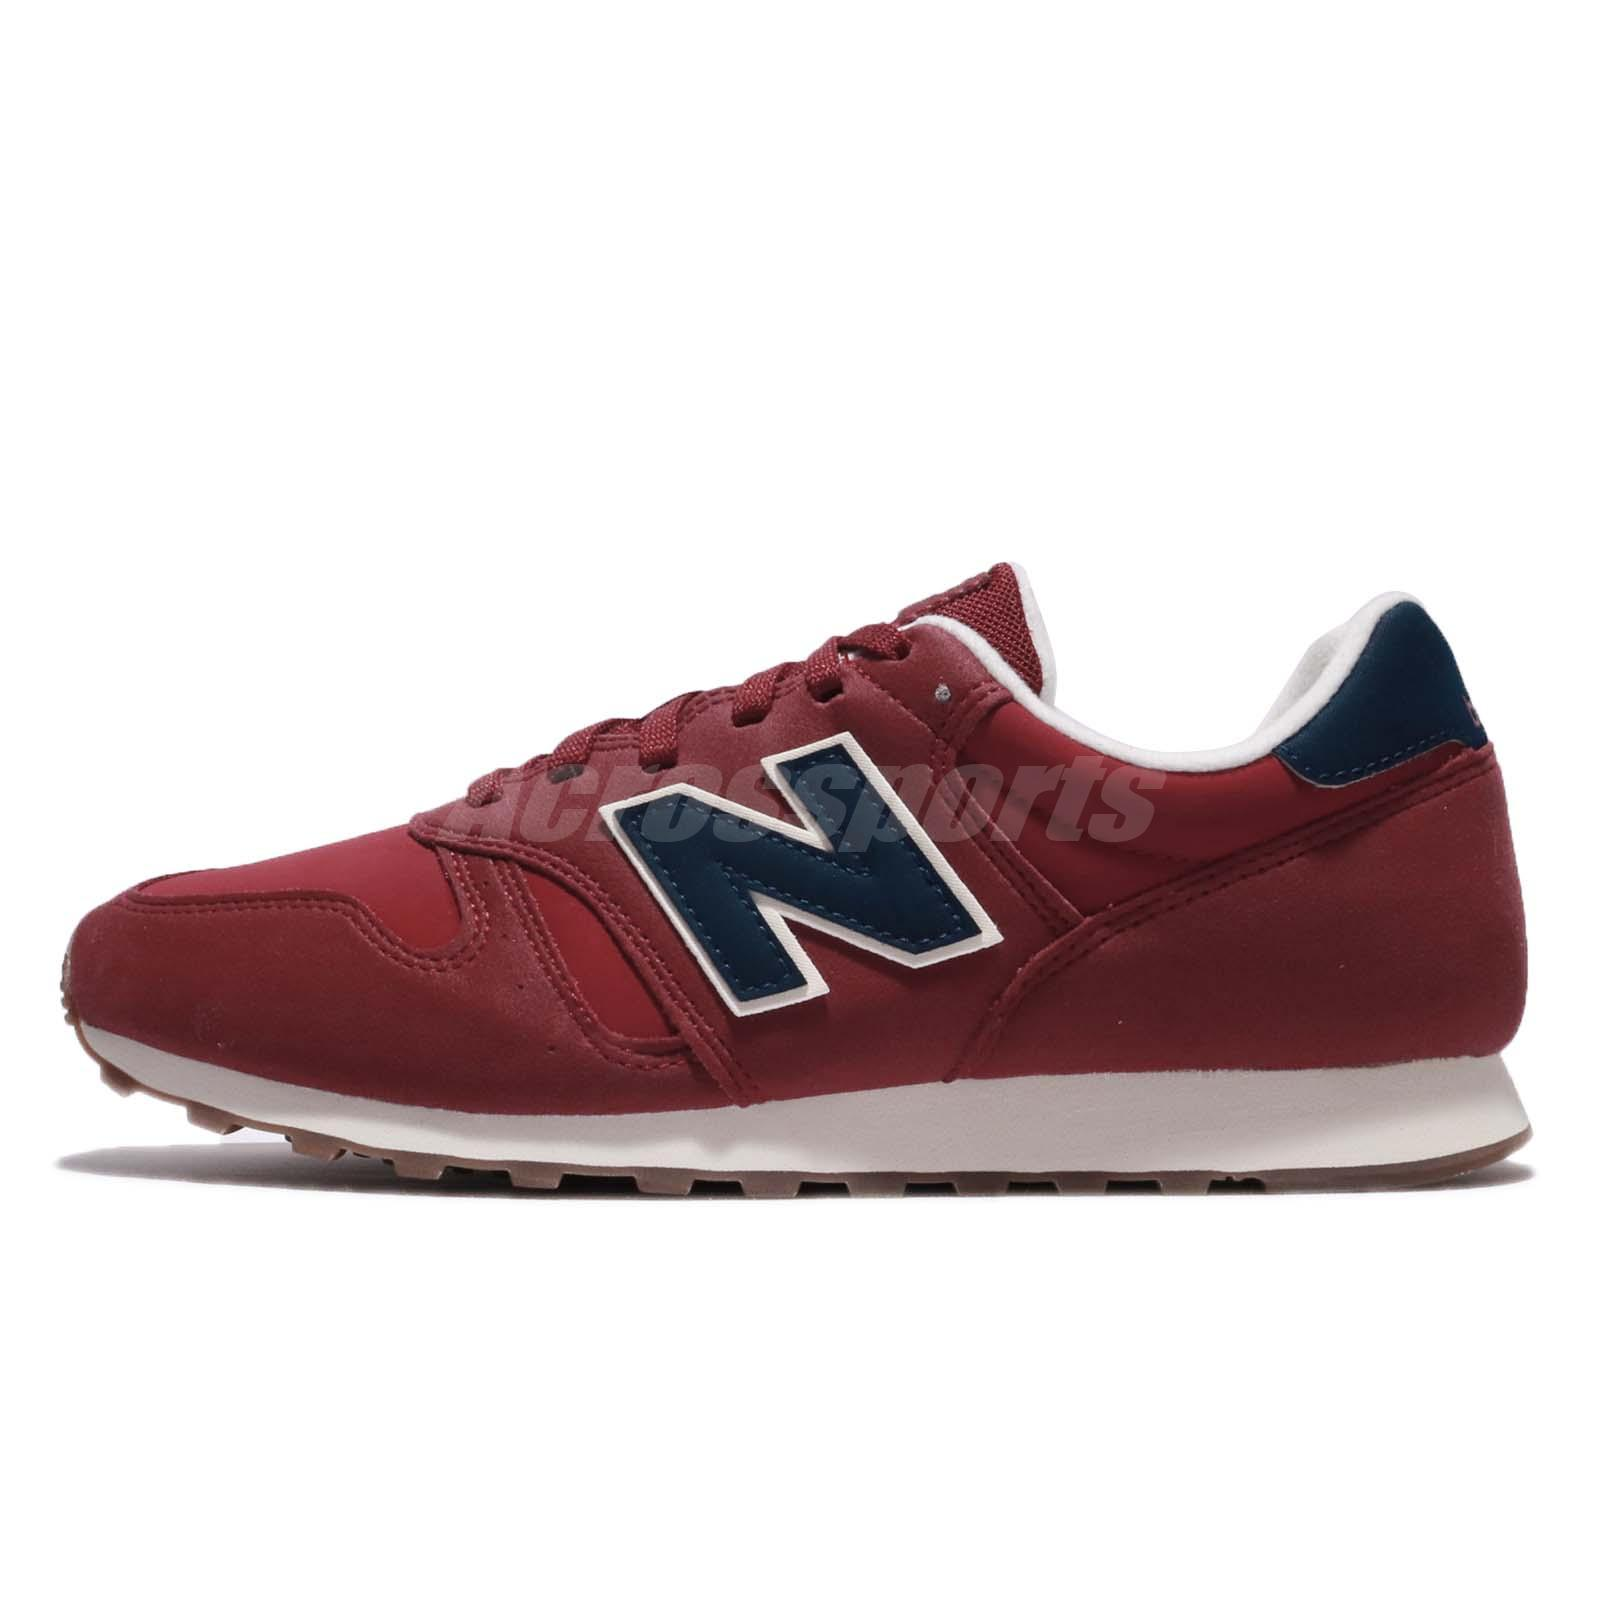 New Balance ML373RBS D 373 Dark Red Blue Men Running Shoes Sneakers ML373  RBSD